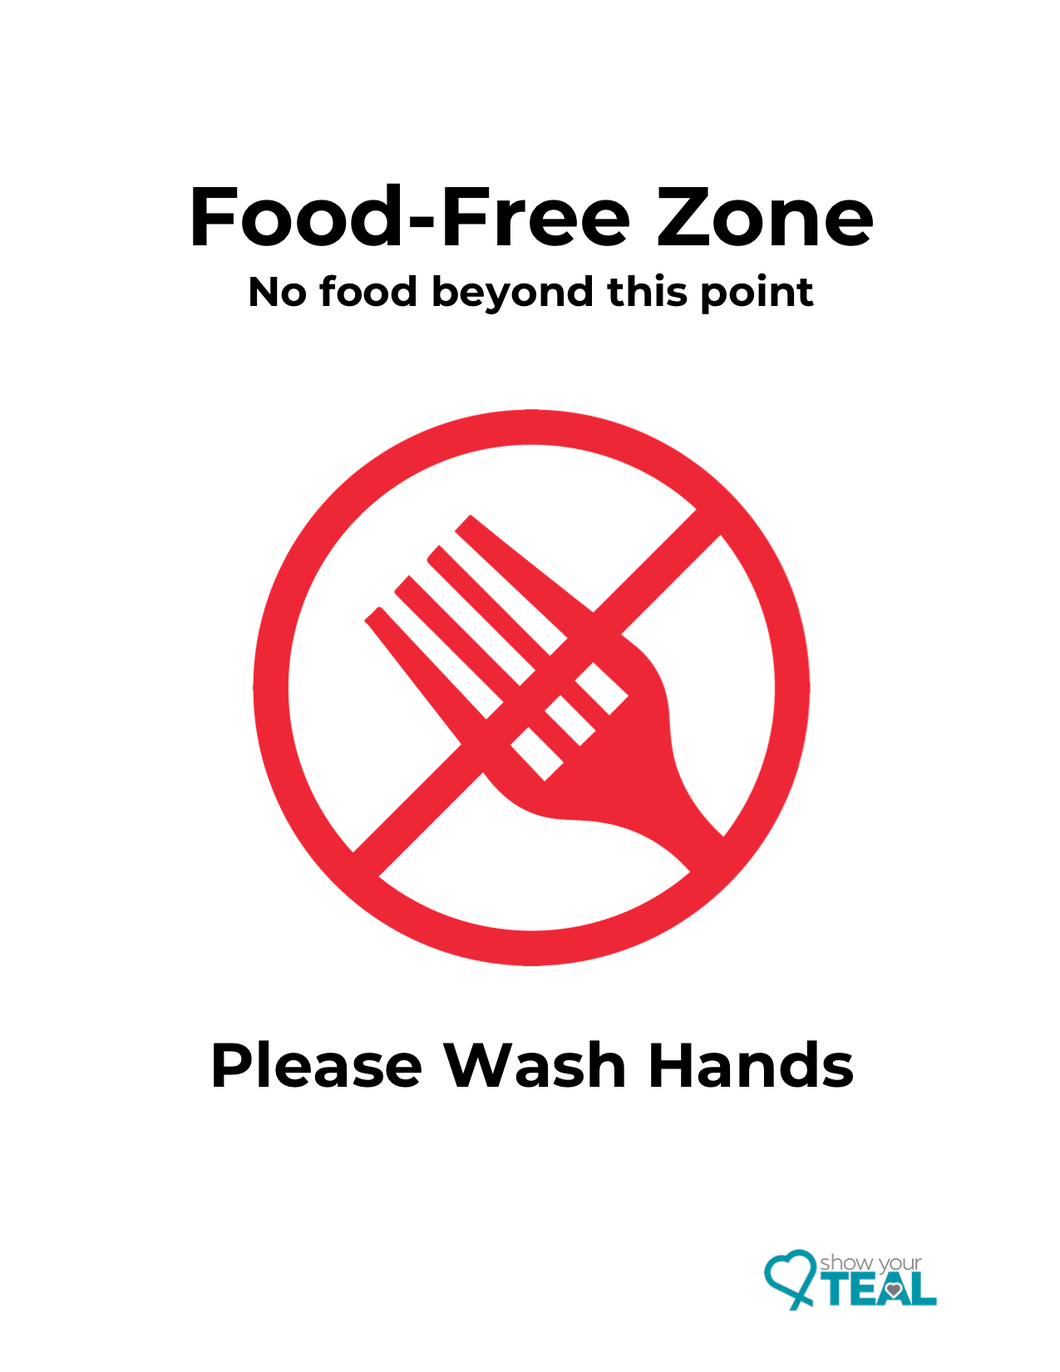 Food-Free Zone poster used to display an area or location that you want to keep free of food.